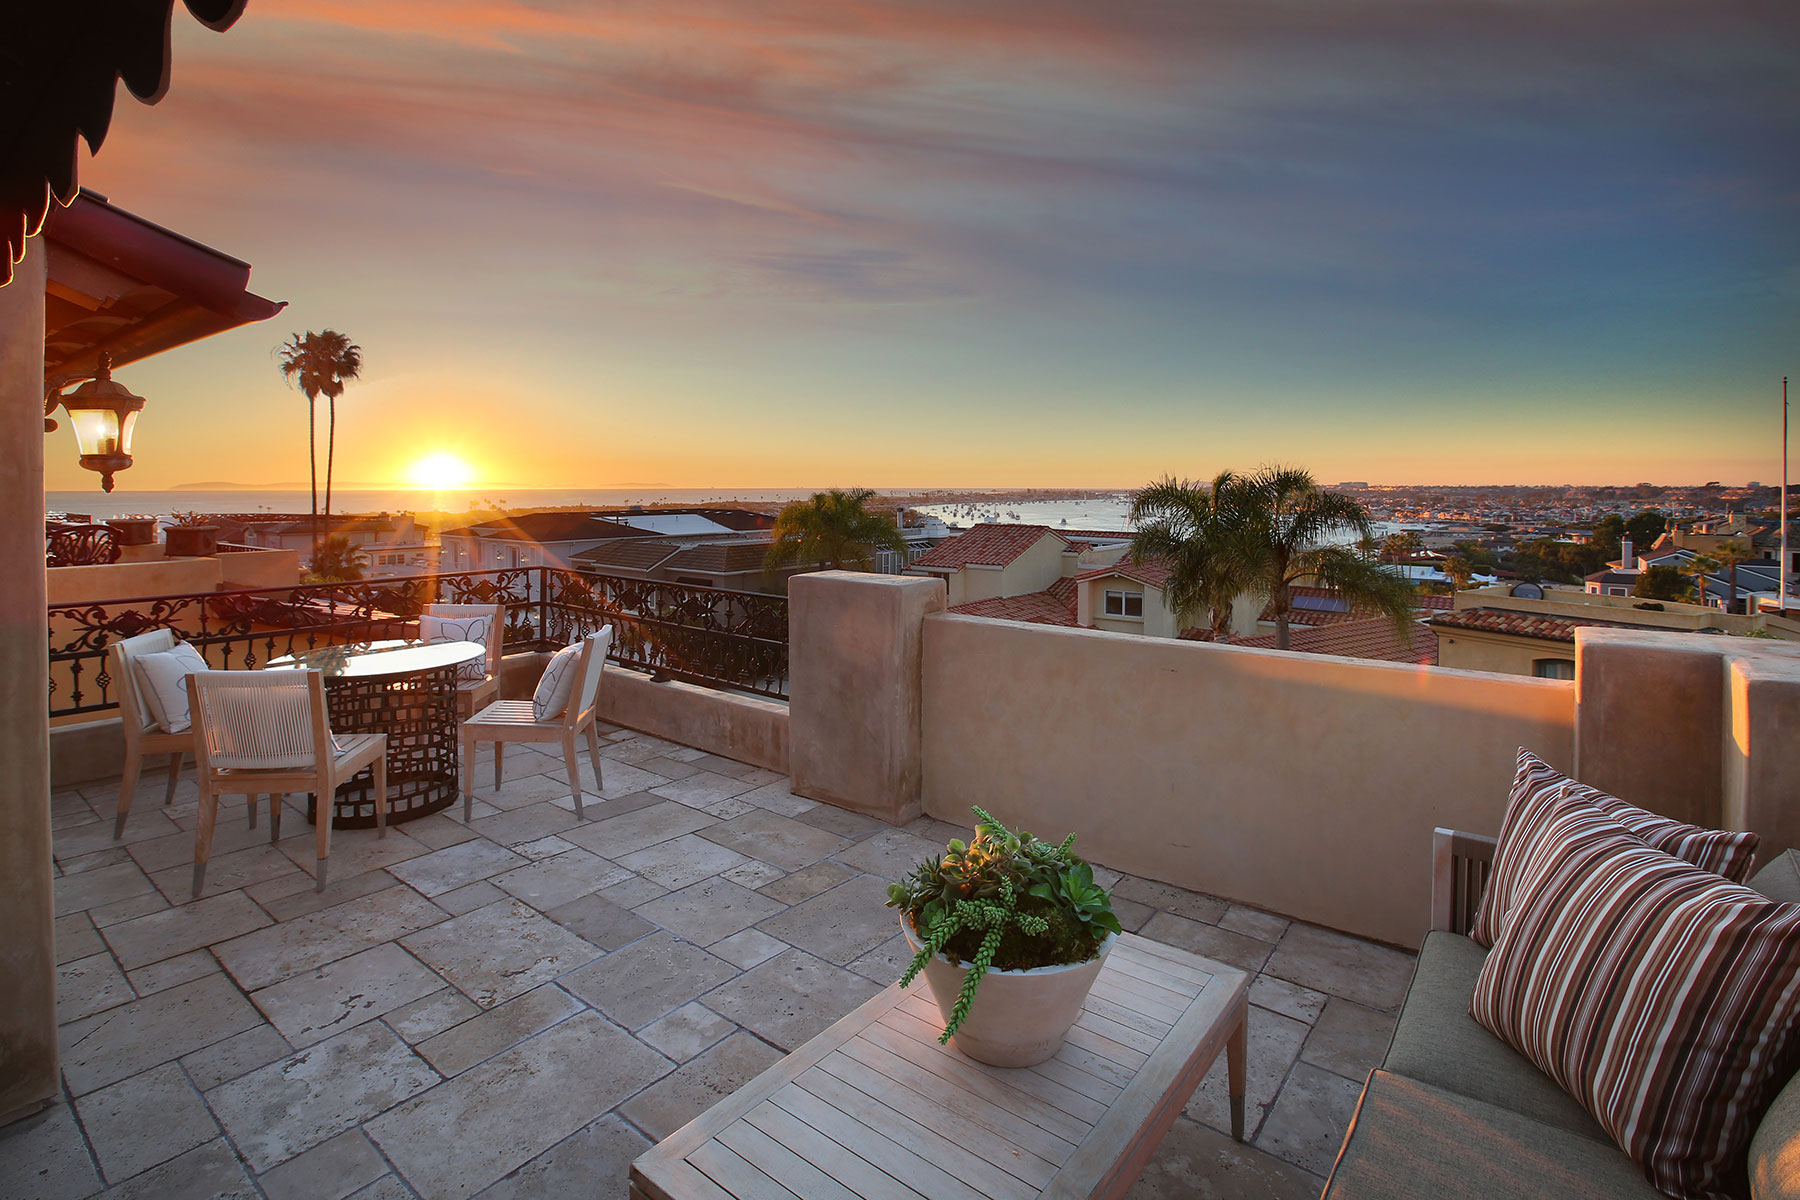 Single Family Home for Sale at 312 Carnation Corona Del Mar, 92625 United States